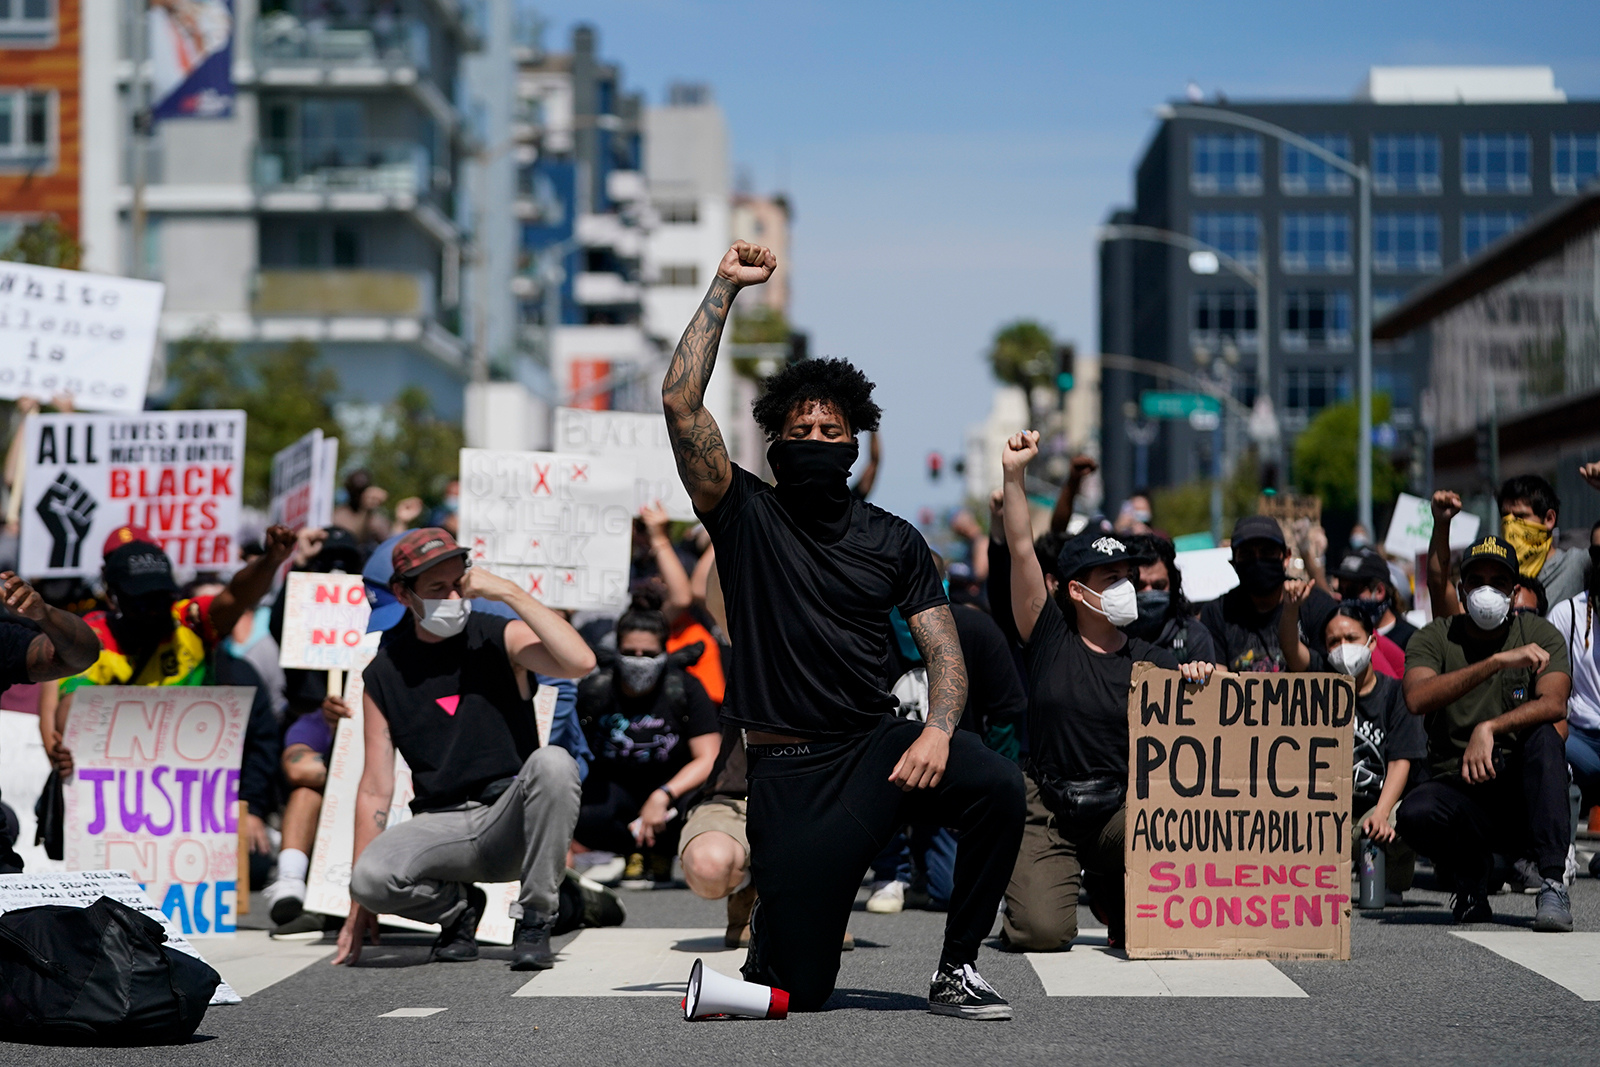 Demonstrators kneel in a moment of silence outside the Long Beach Police Department on Sunday, May 31 in Long Beach, California.